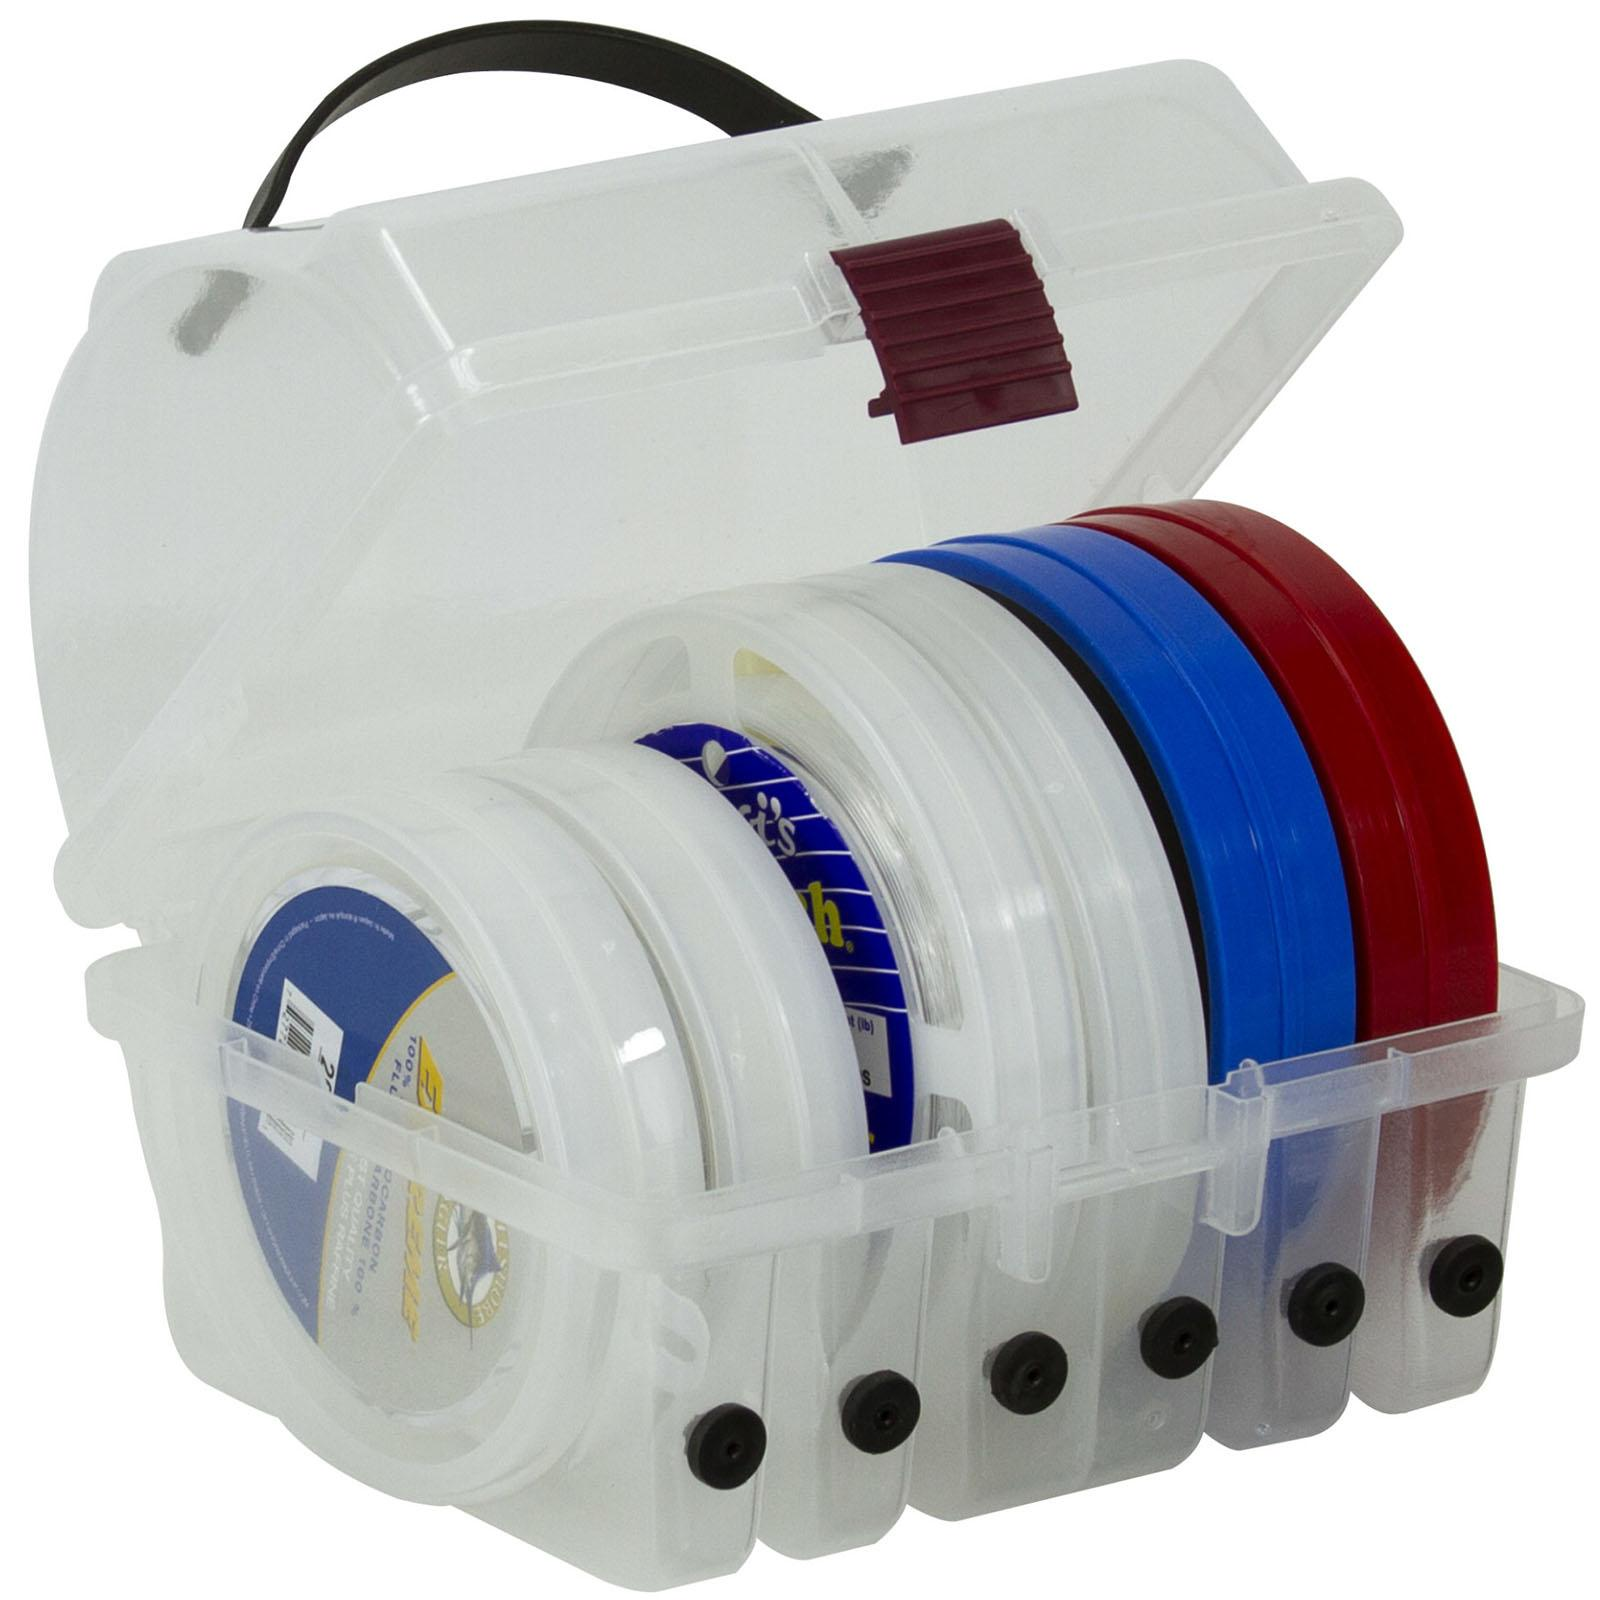 Plano Leader Spool Box